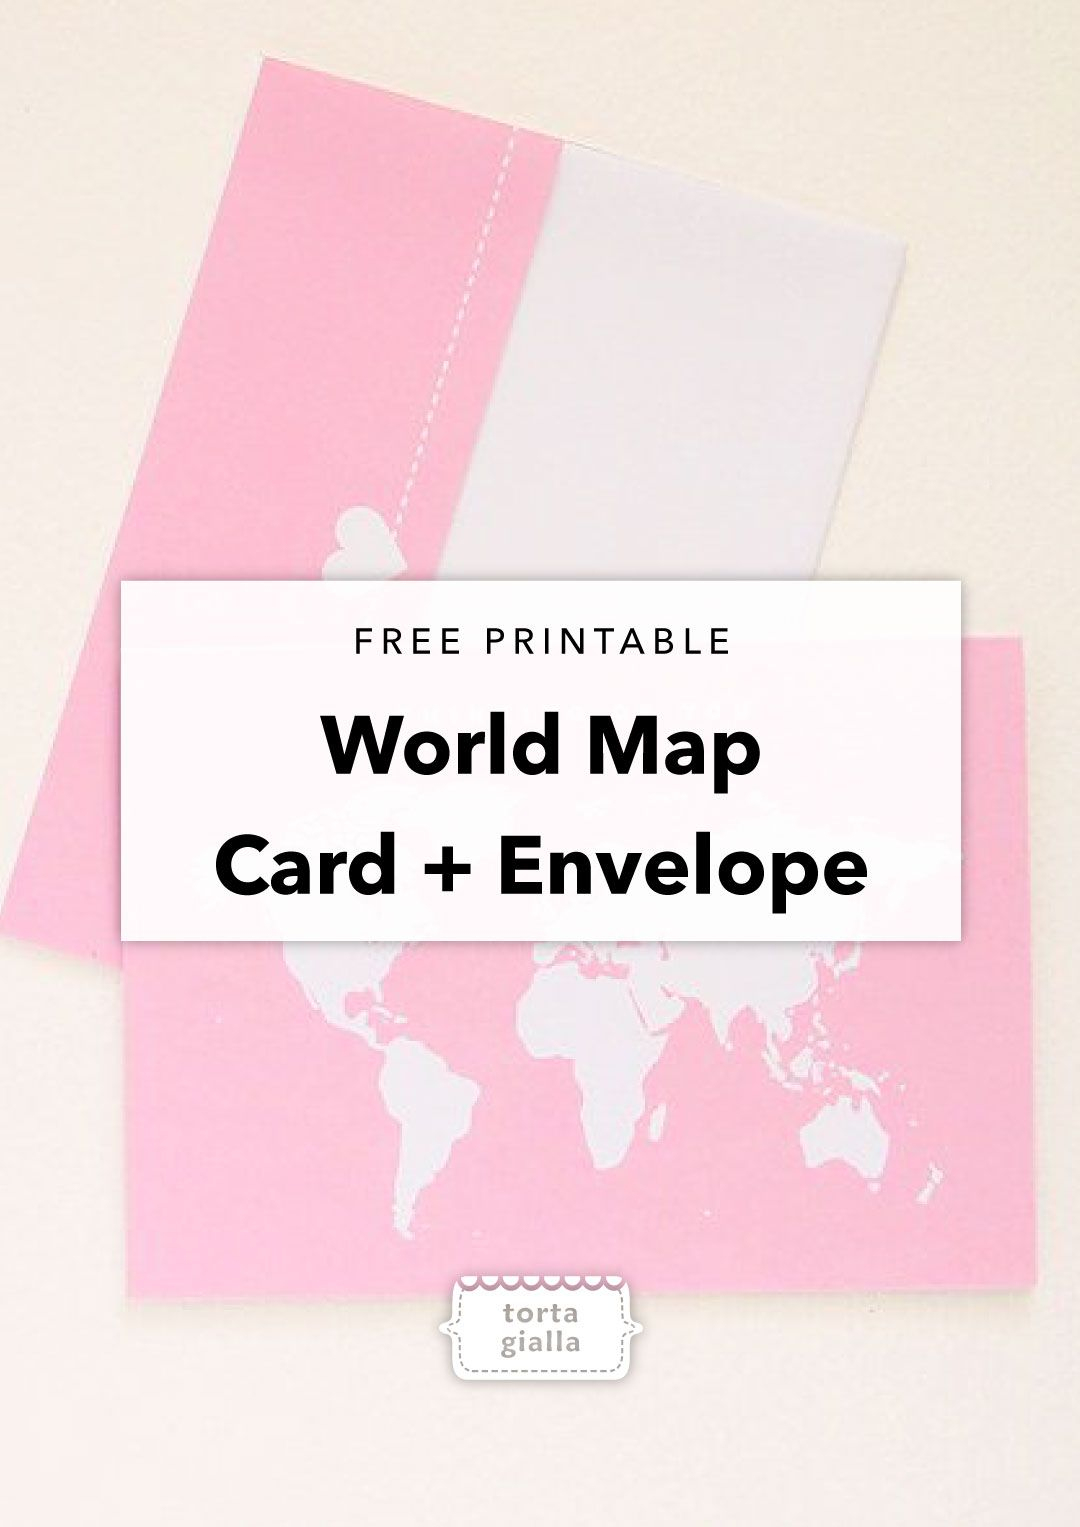 Free Printable Thinking Of You World Map Card And Envelope - Free Printable Funny Thinking Of You Cards